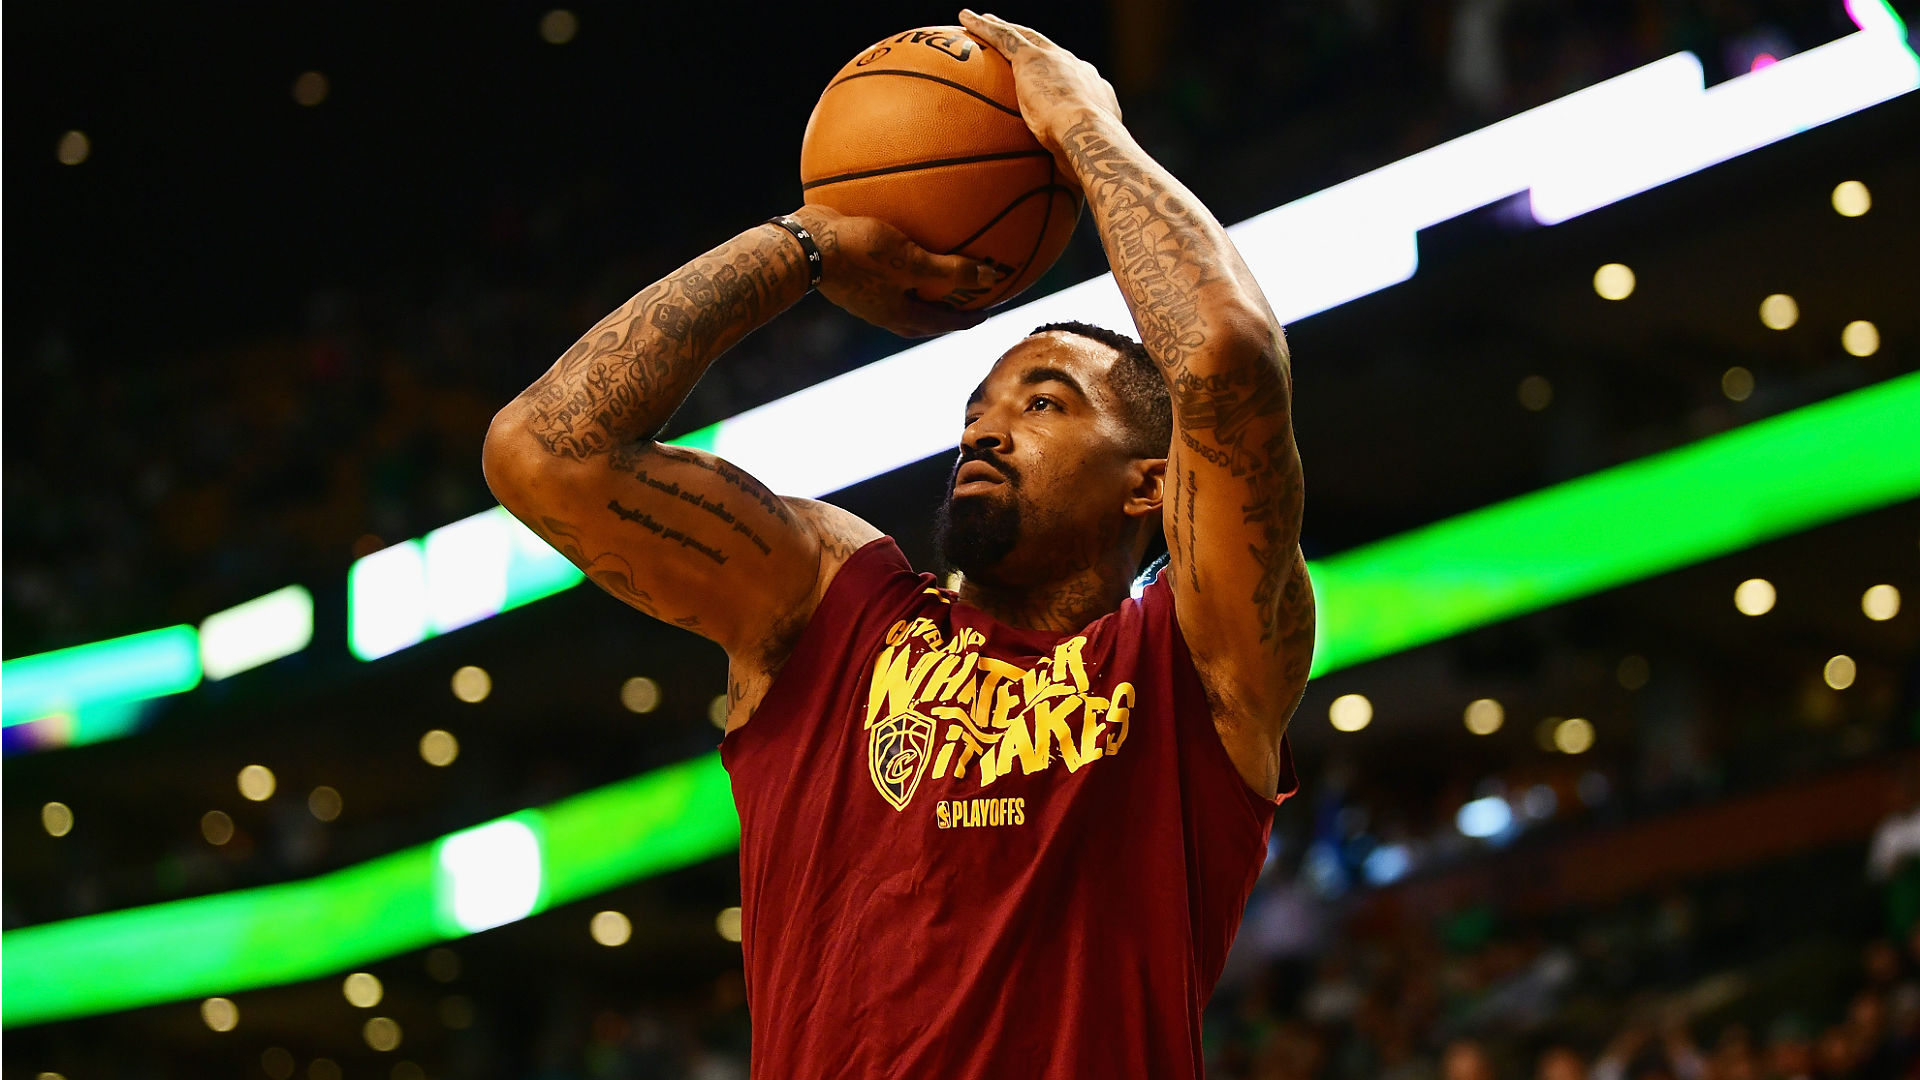 NBA trade rumors: At least 2 teams interested in JR Smith following reported George Hill deal